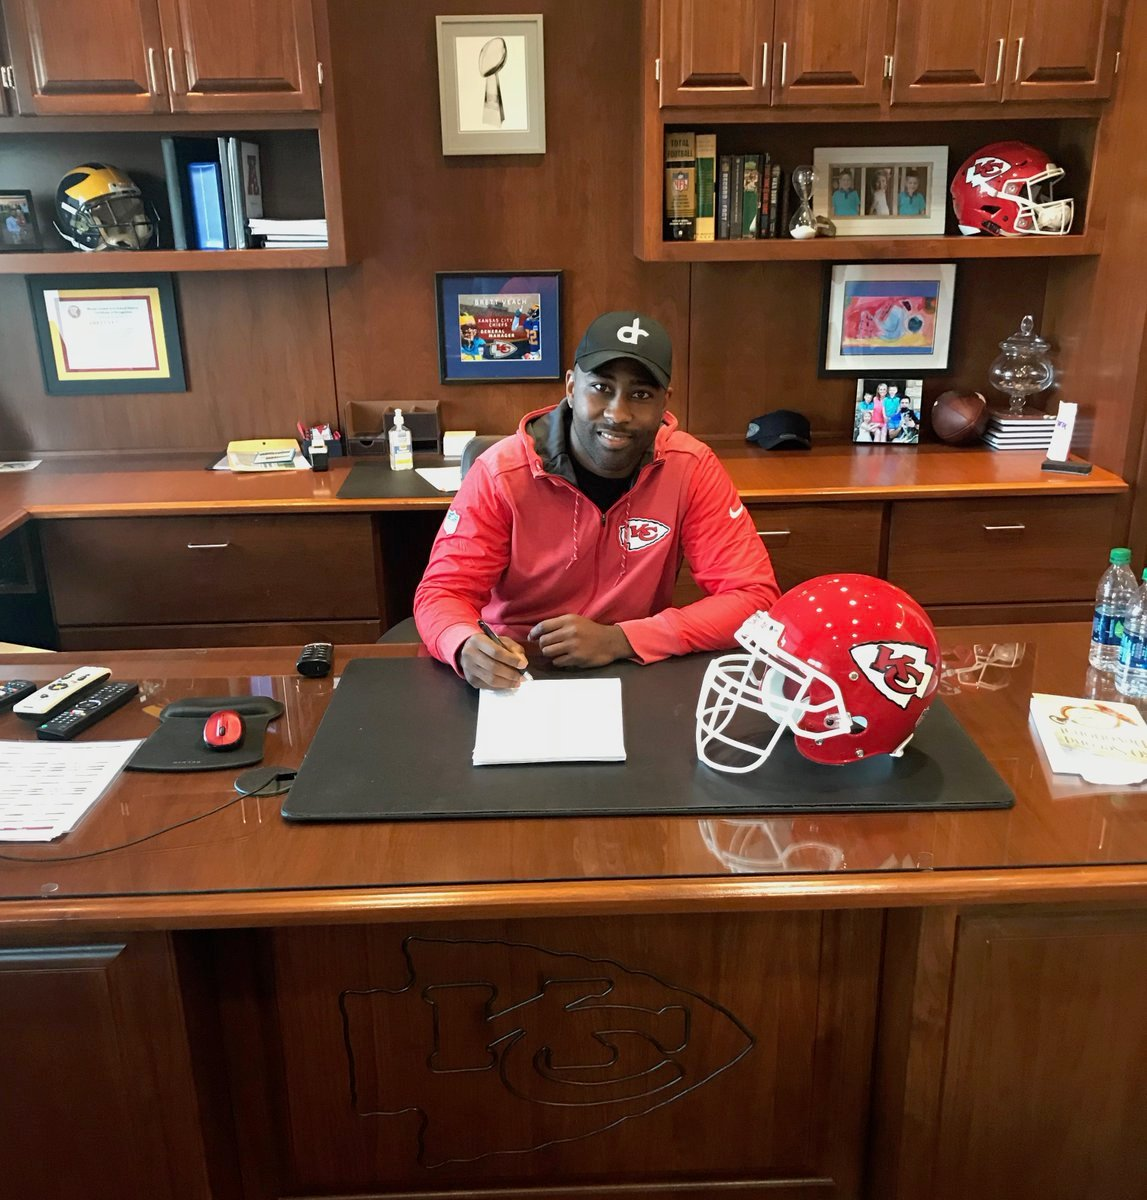 The Kansas City Chiefs have signed free agent cornerback Darrelle Revis. (Kansas City Chiefs)